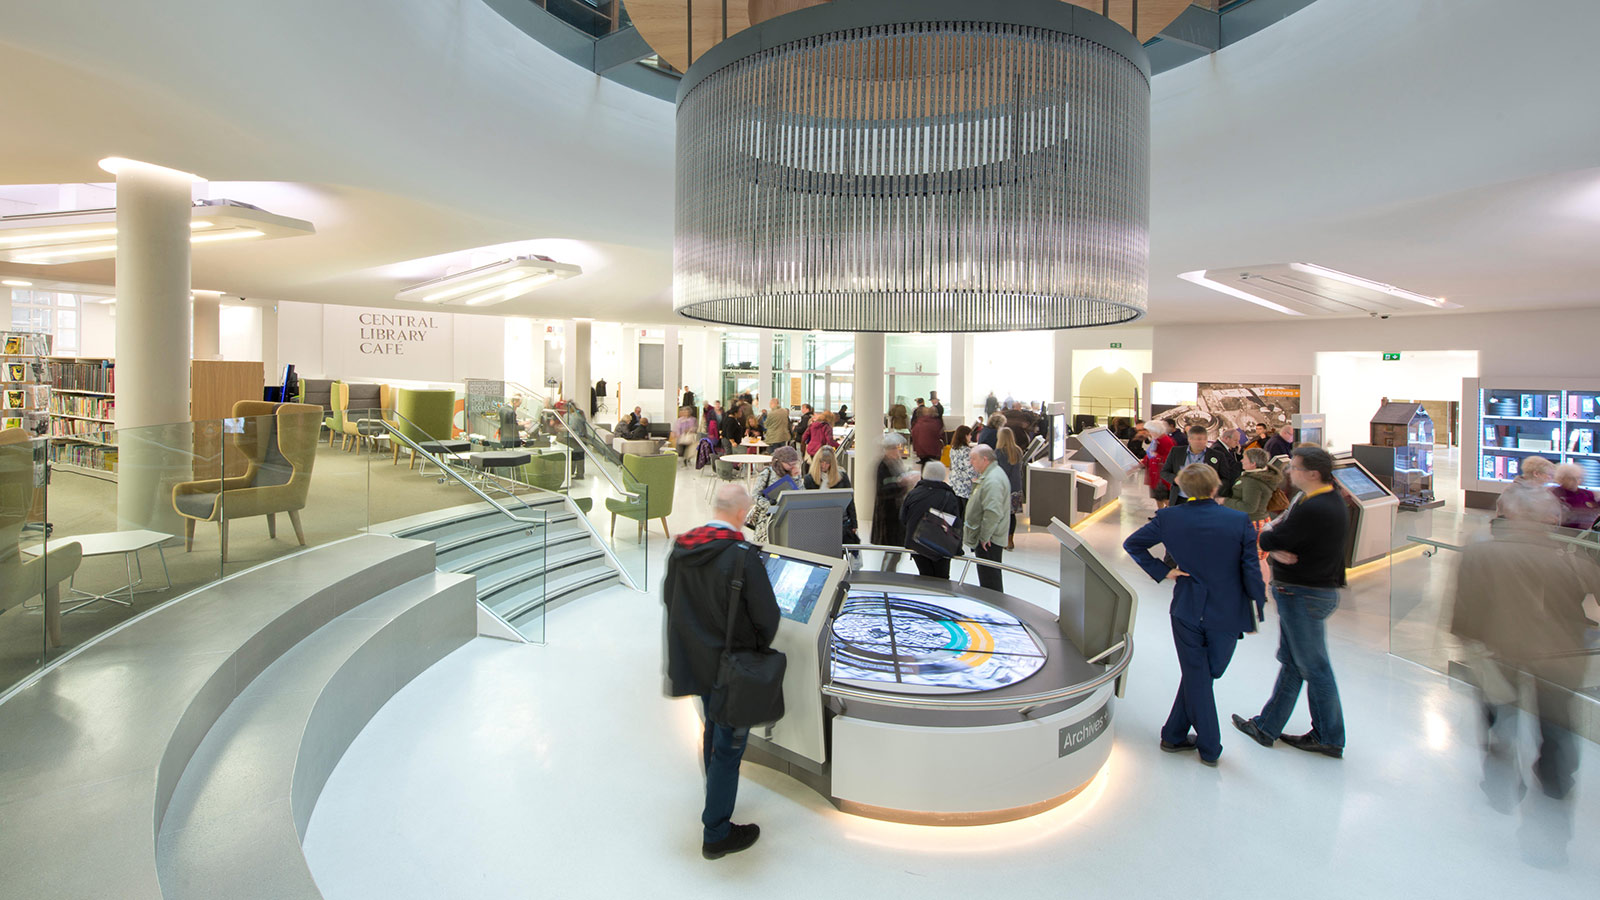 Visitors using the new facilities within the newly refurbished Central Library